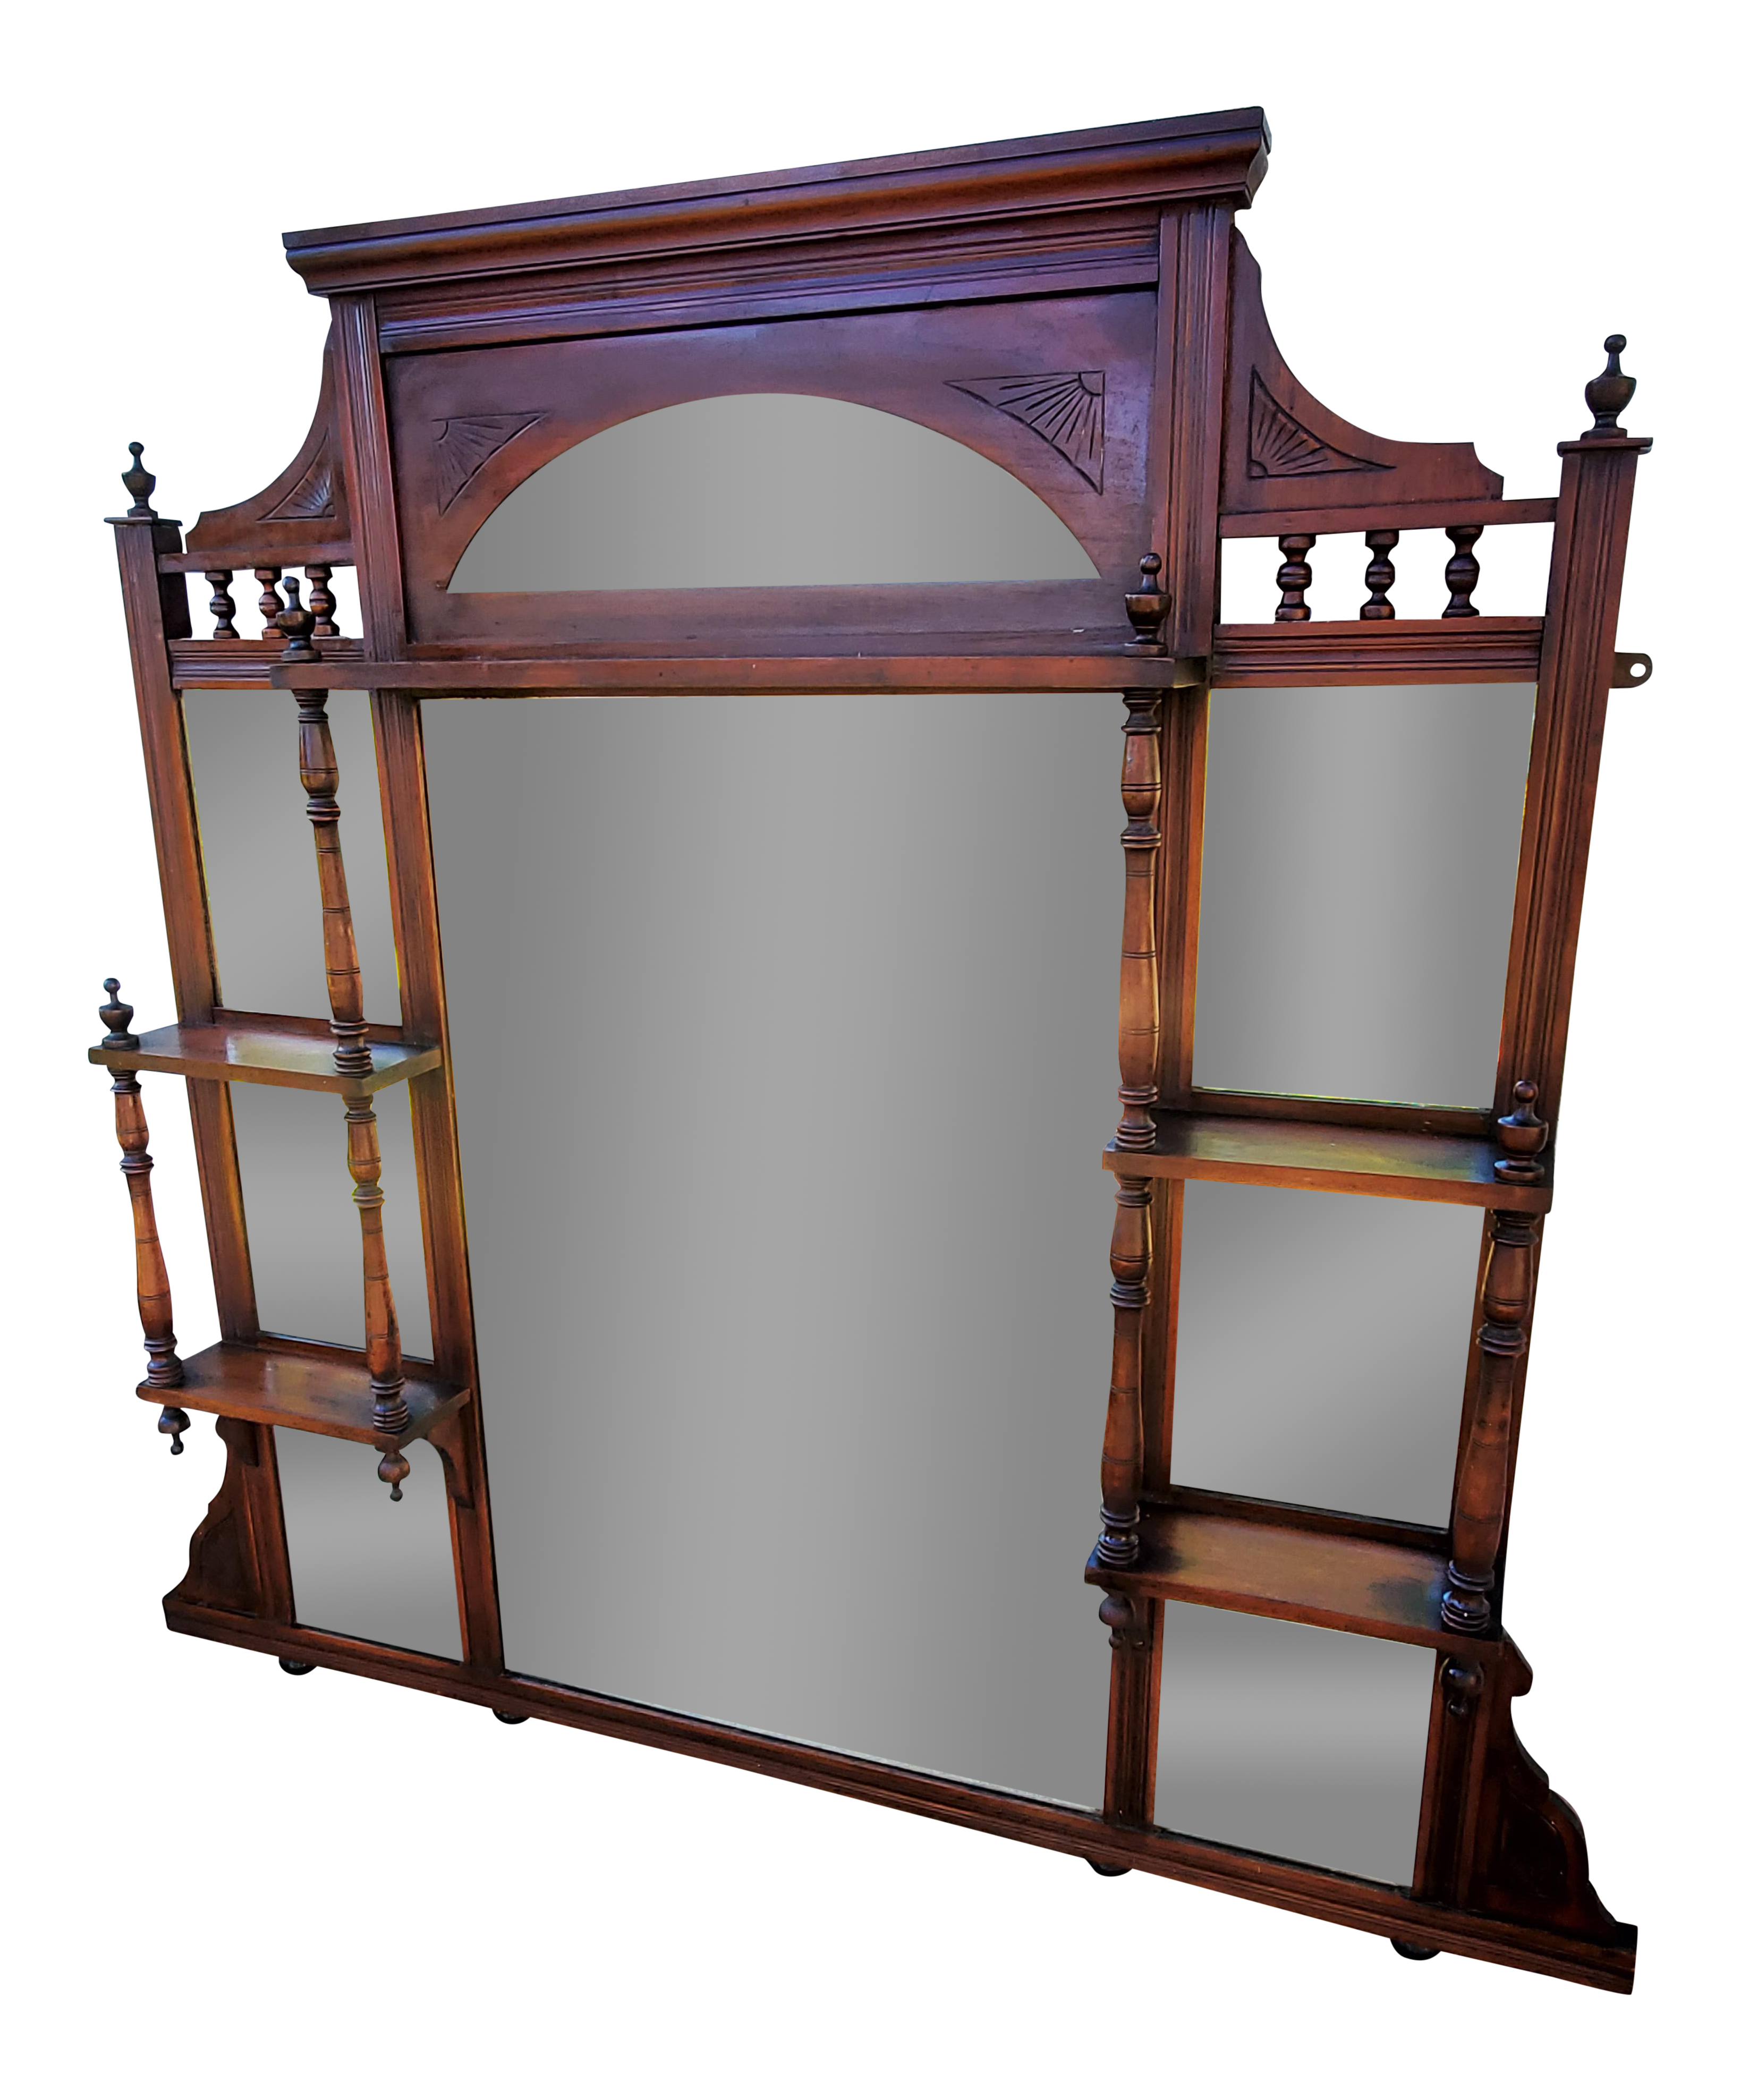 1880s Antique Victorian Walnut Over Fireplace Mantel Mirror With Shelves Chairish